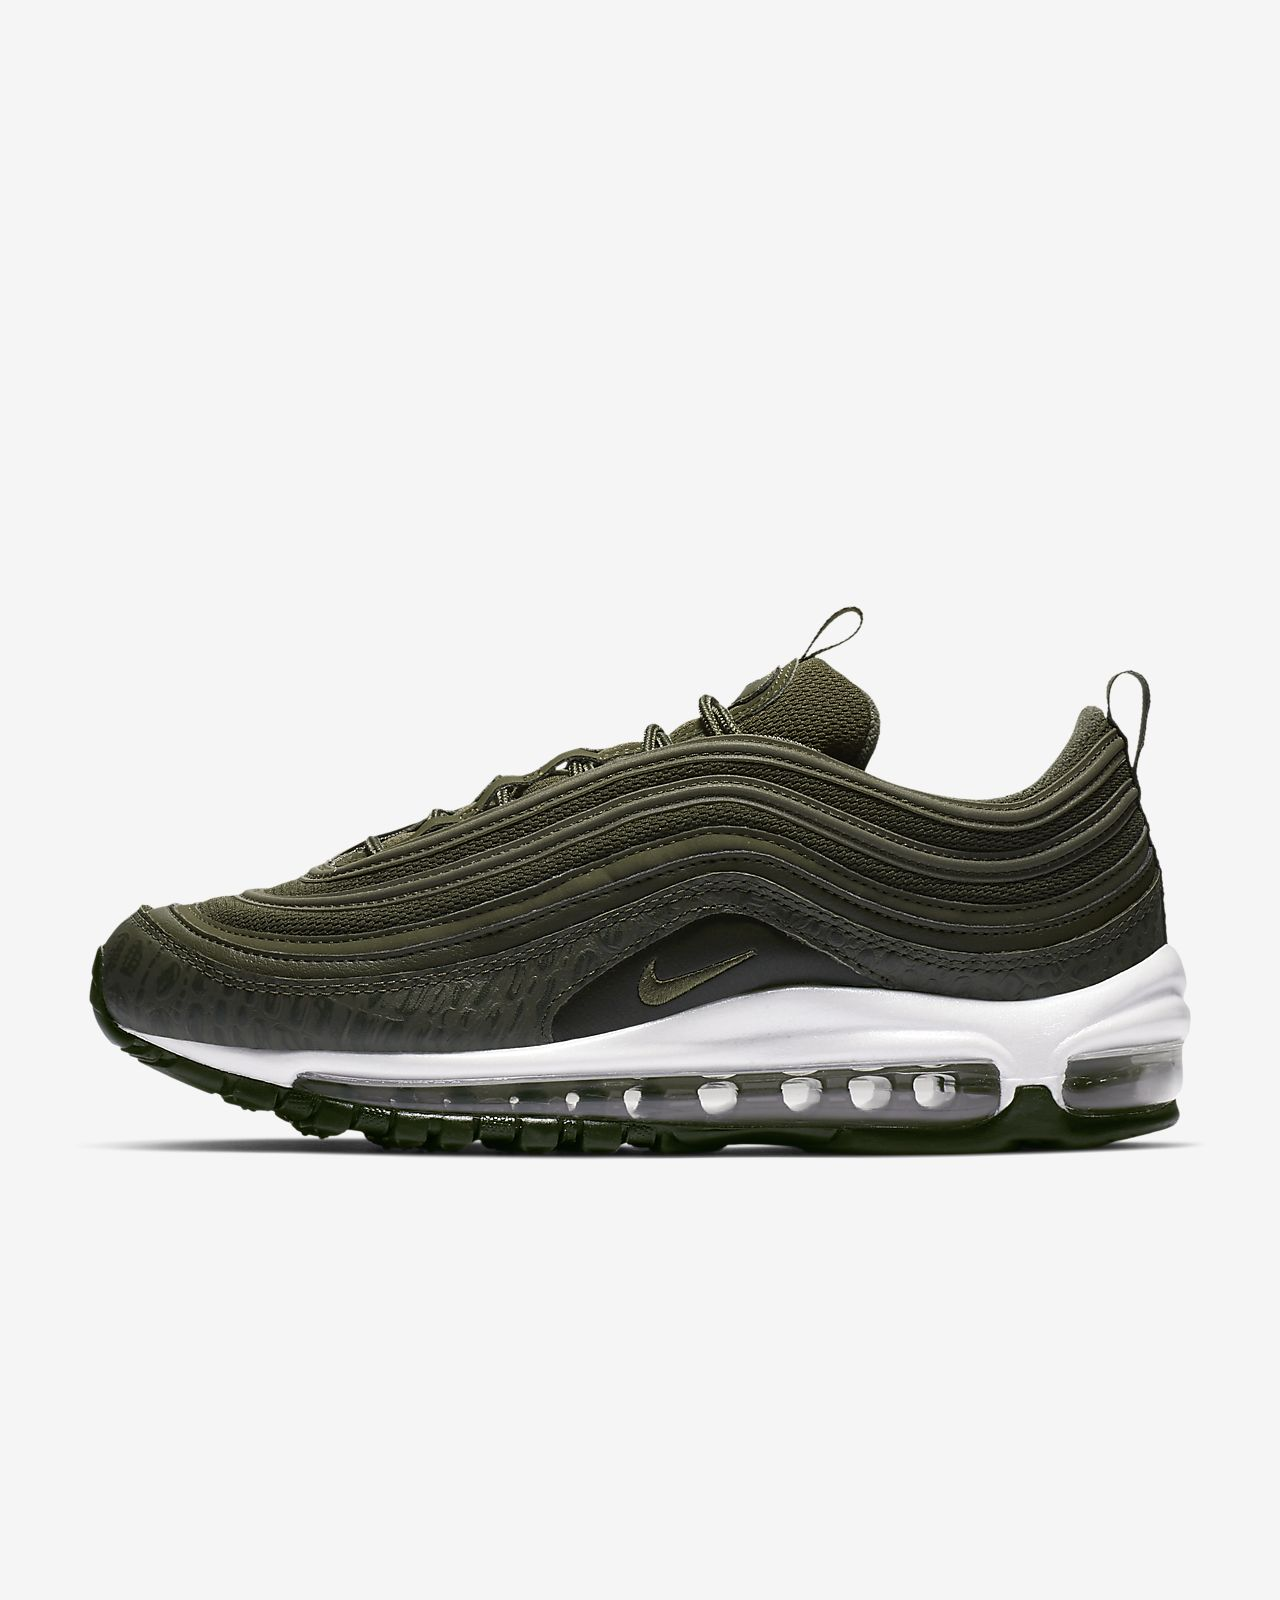 low priced b9e00 cd0f2 Chaussure Nike Air Max 97 LX pour Femme